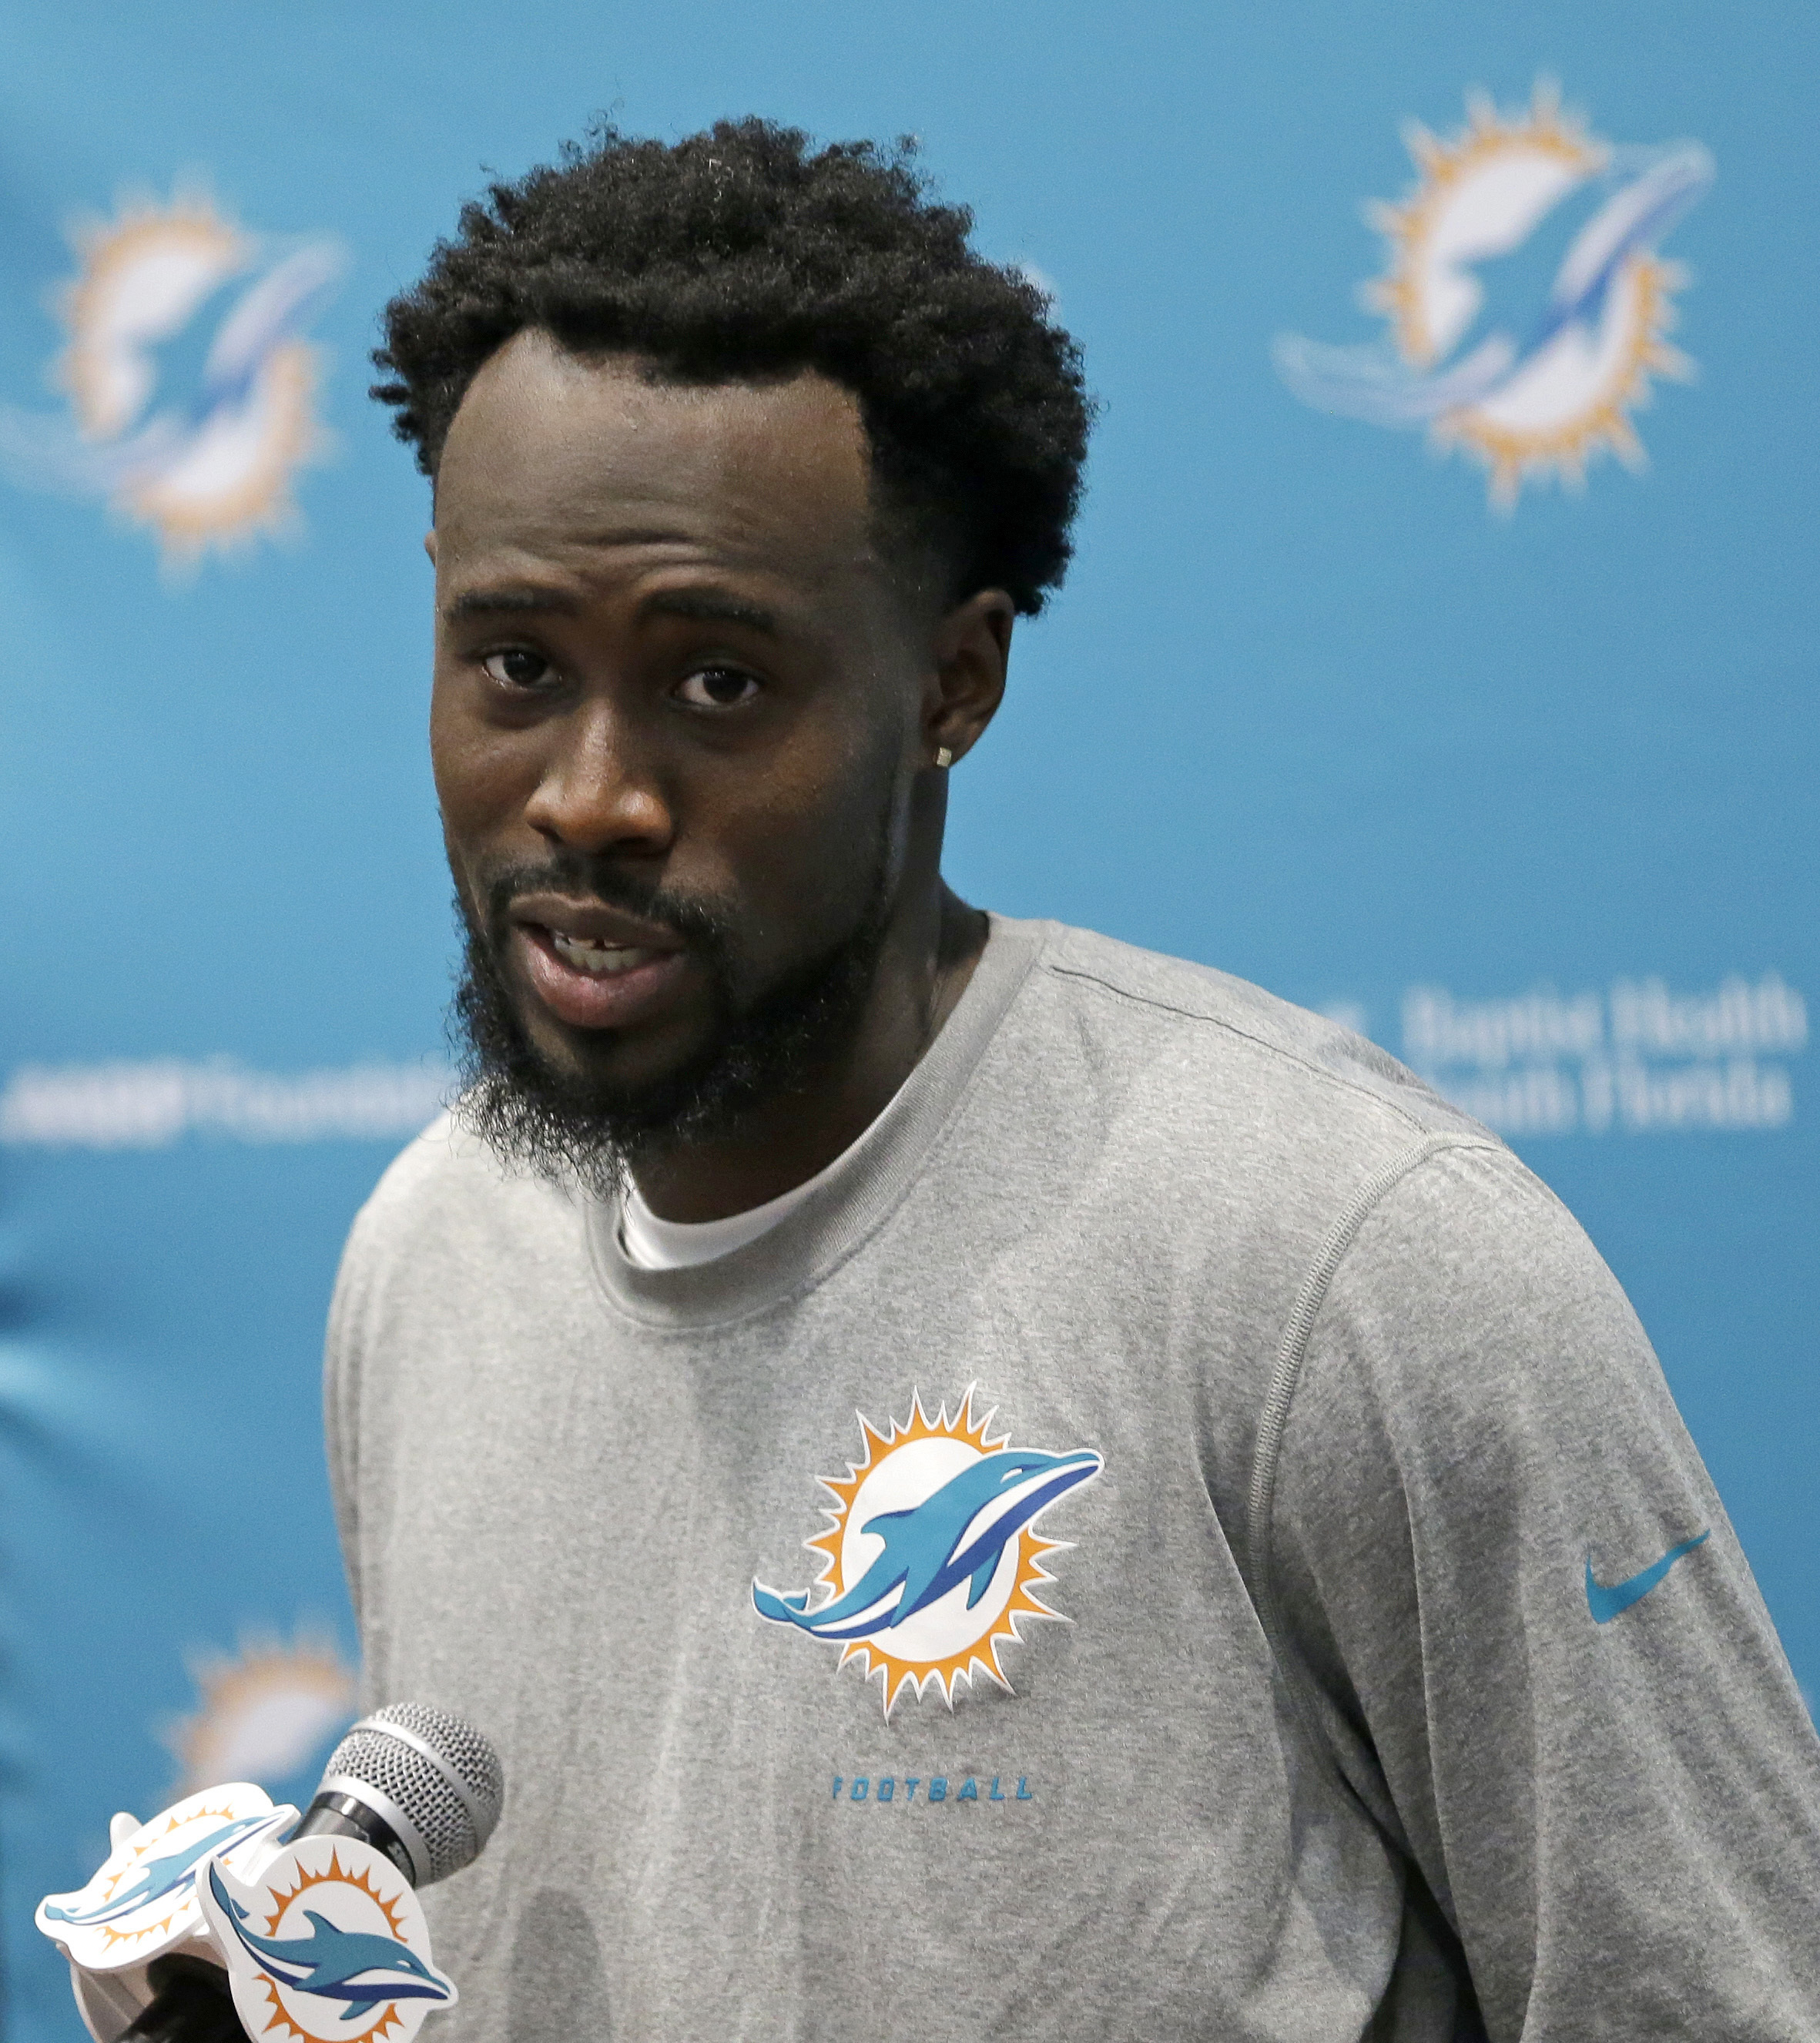 Miami Dolphins cornerback Tony Lippett talks to reporters after NFL football practice, Tuesday, May 24, 2016, in Davie. Fla. Tony Lippett played mostly receiver at Michigan State, but the second-year pro is now a contender for a starting job at cornerback